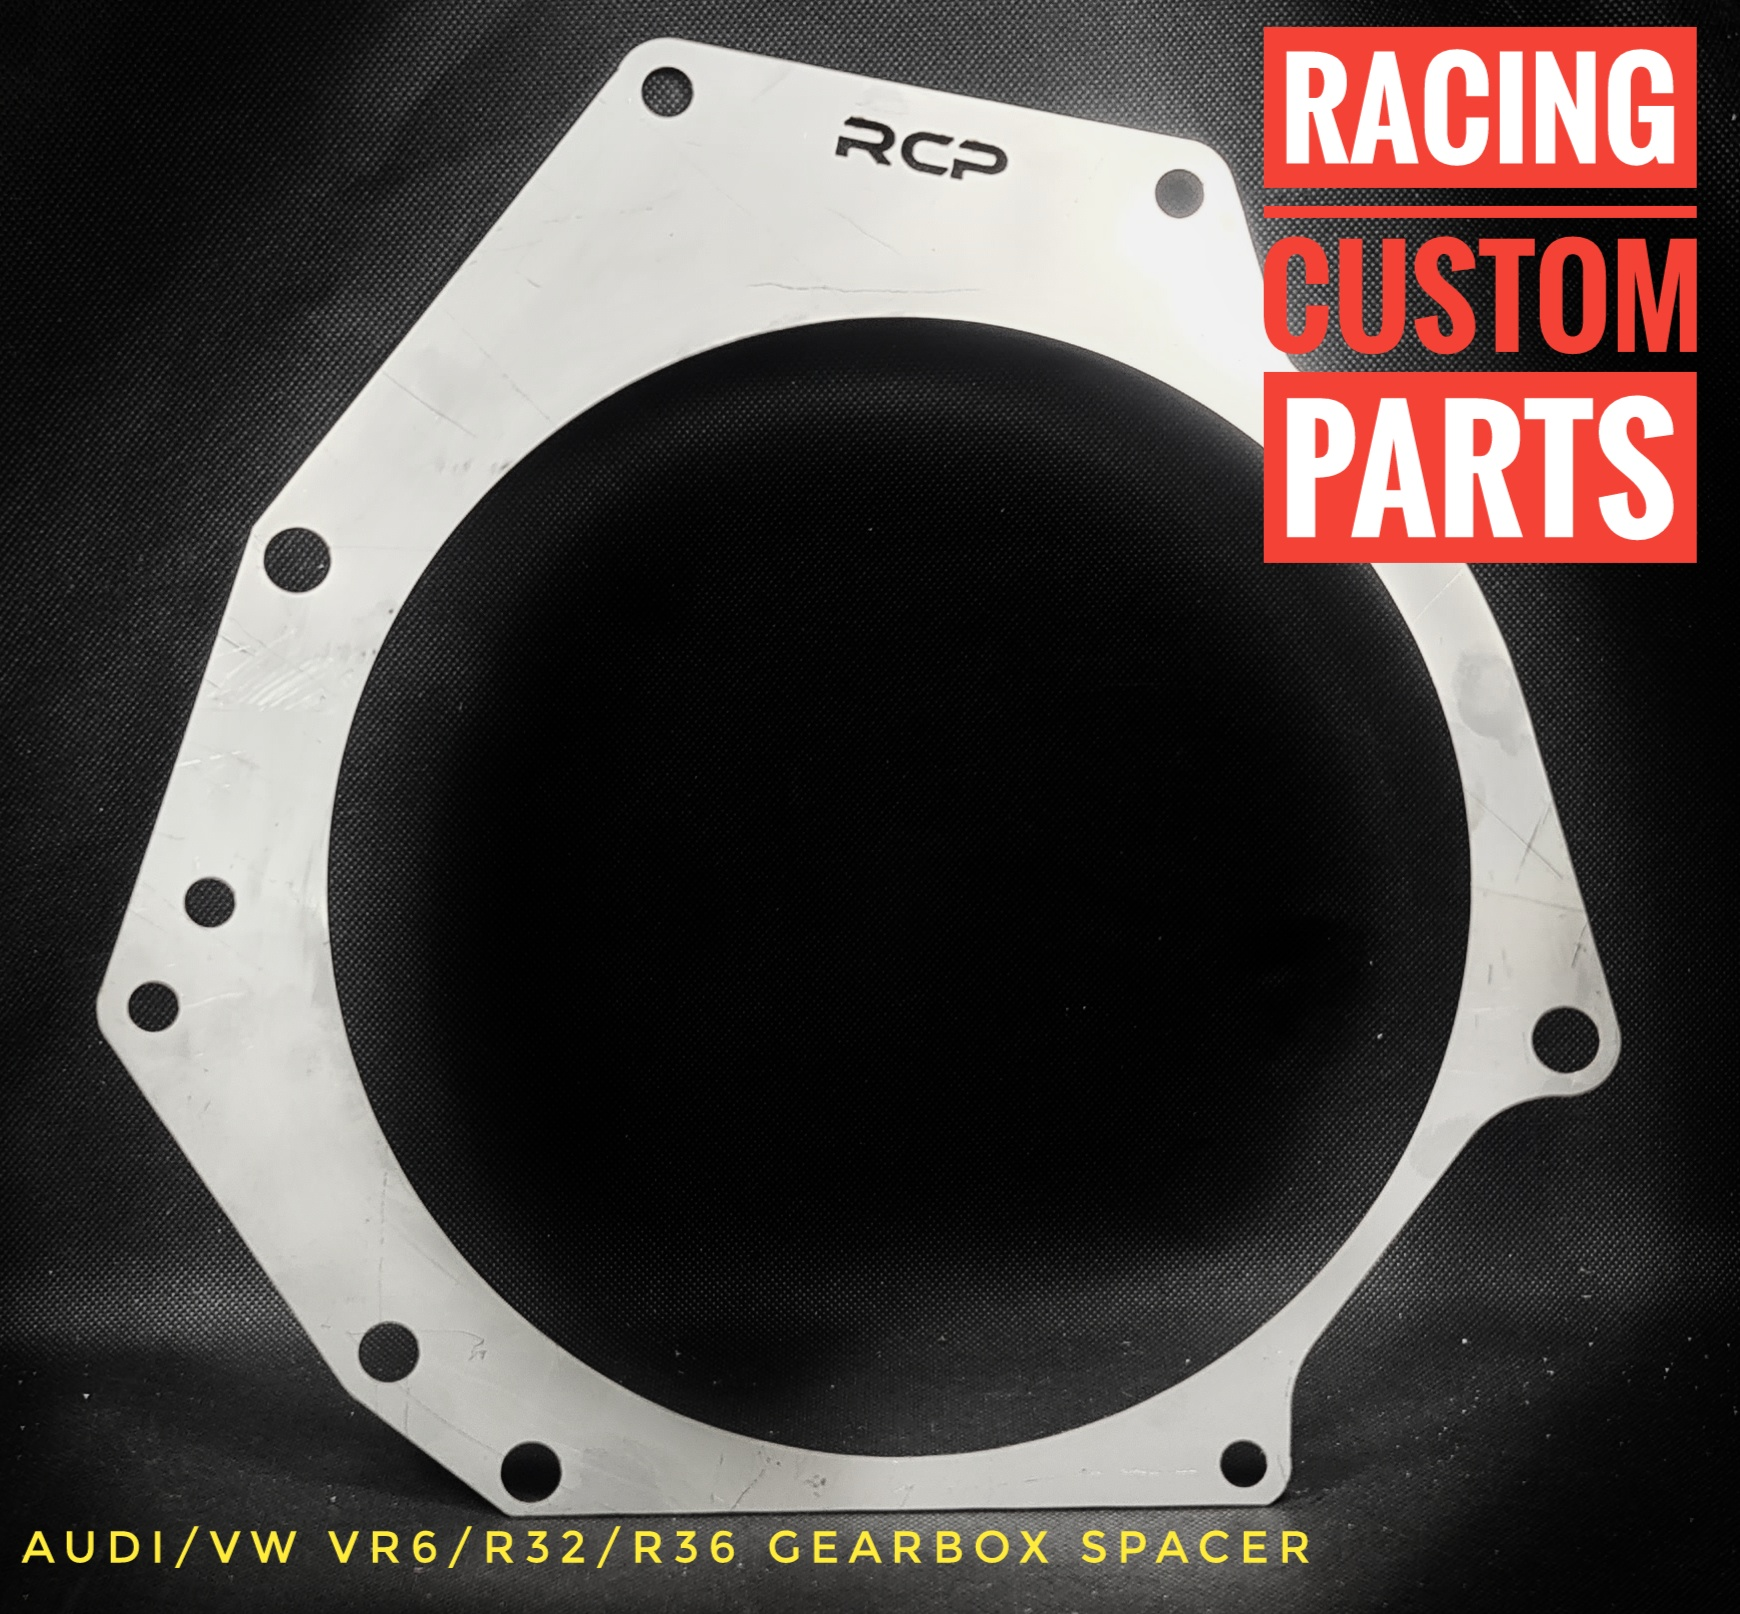 audi vw vr6 r32 r36 gearbox spacer clutch racing custom parts billet cnc